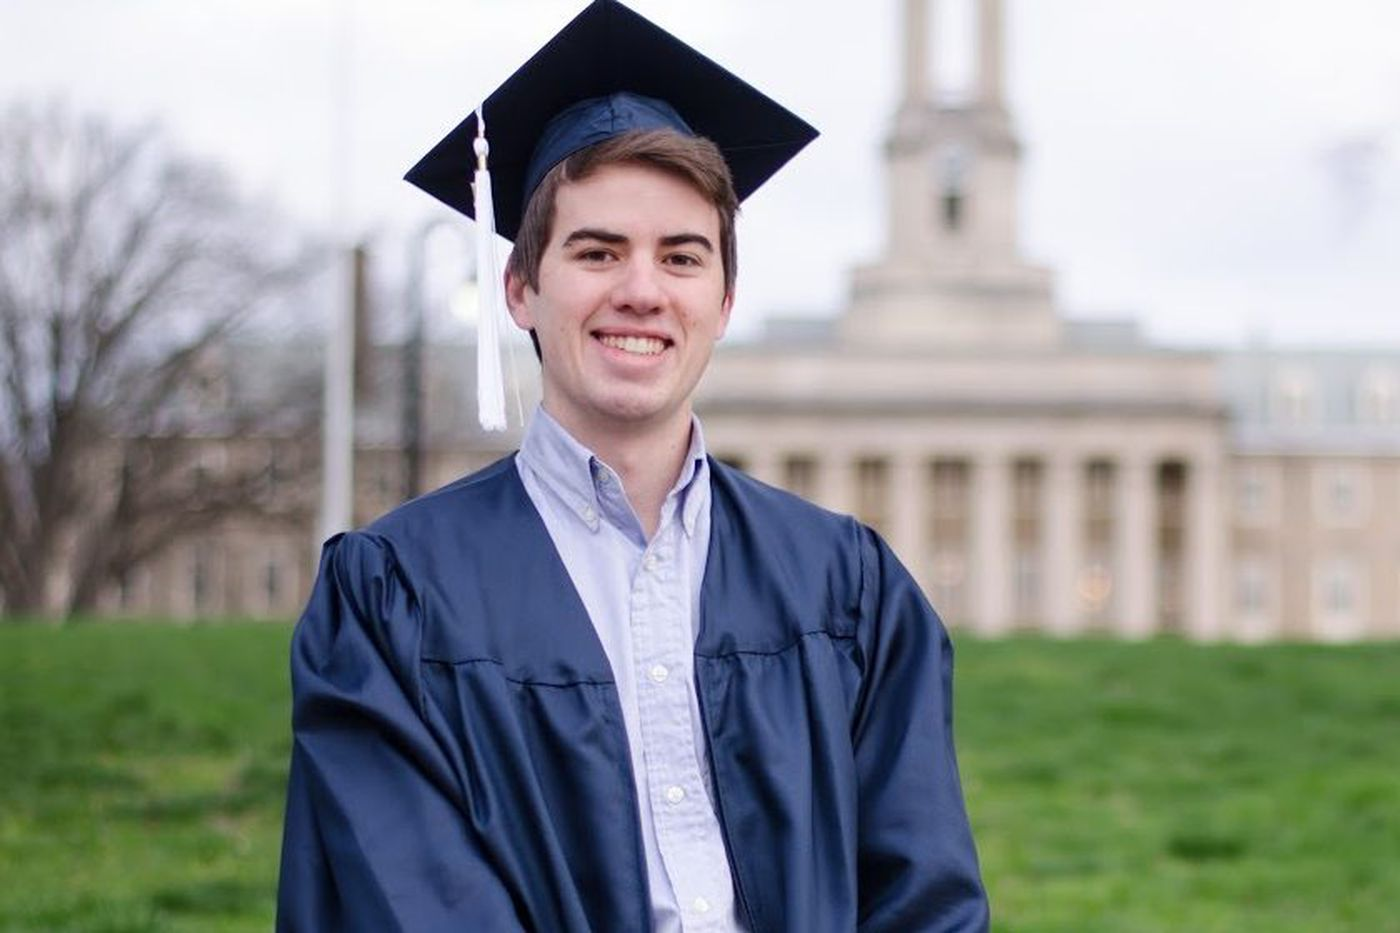 Jack T. Phillips, 23, Penn State grad who aspired to protect the environment